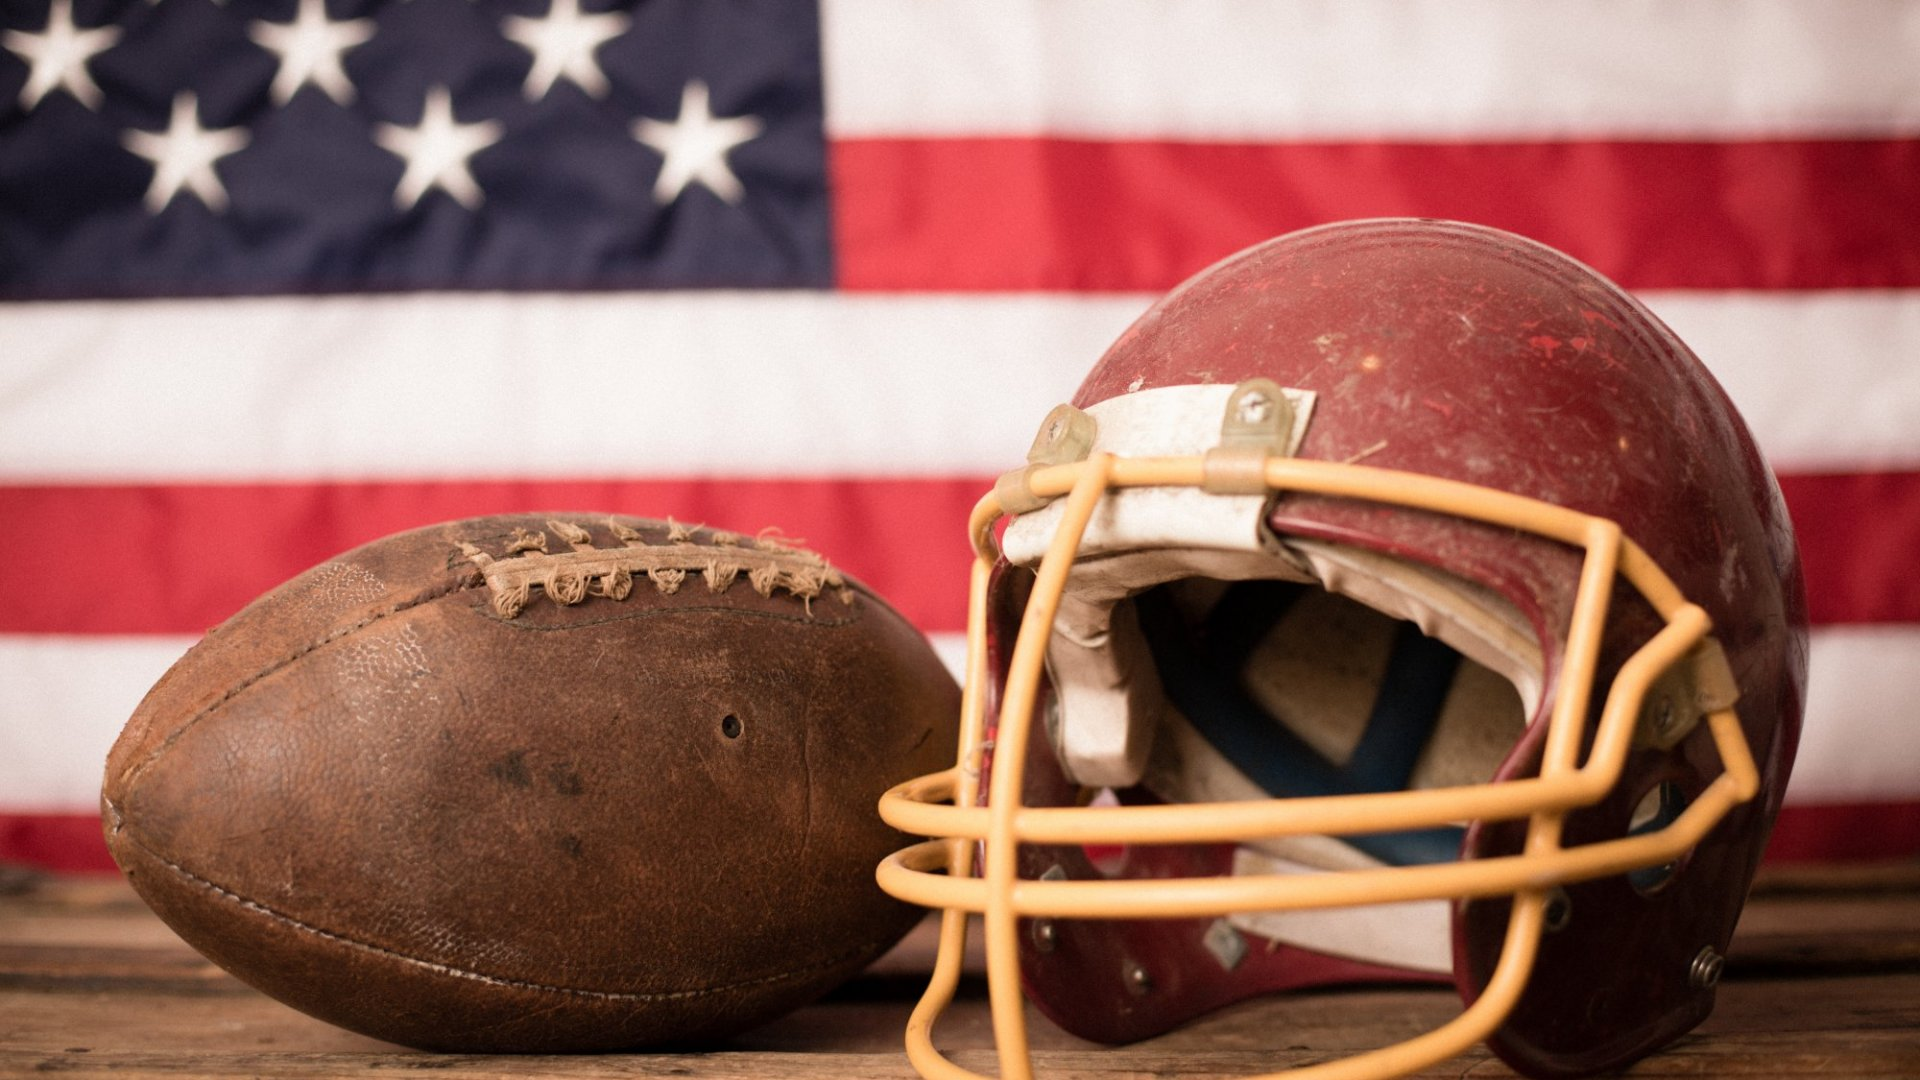 Football Friday Nights: The Product Evolution of the Helmet